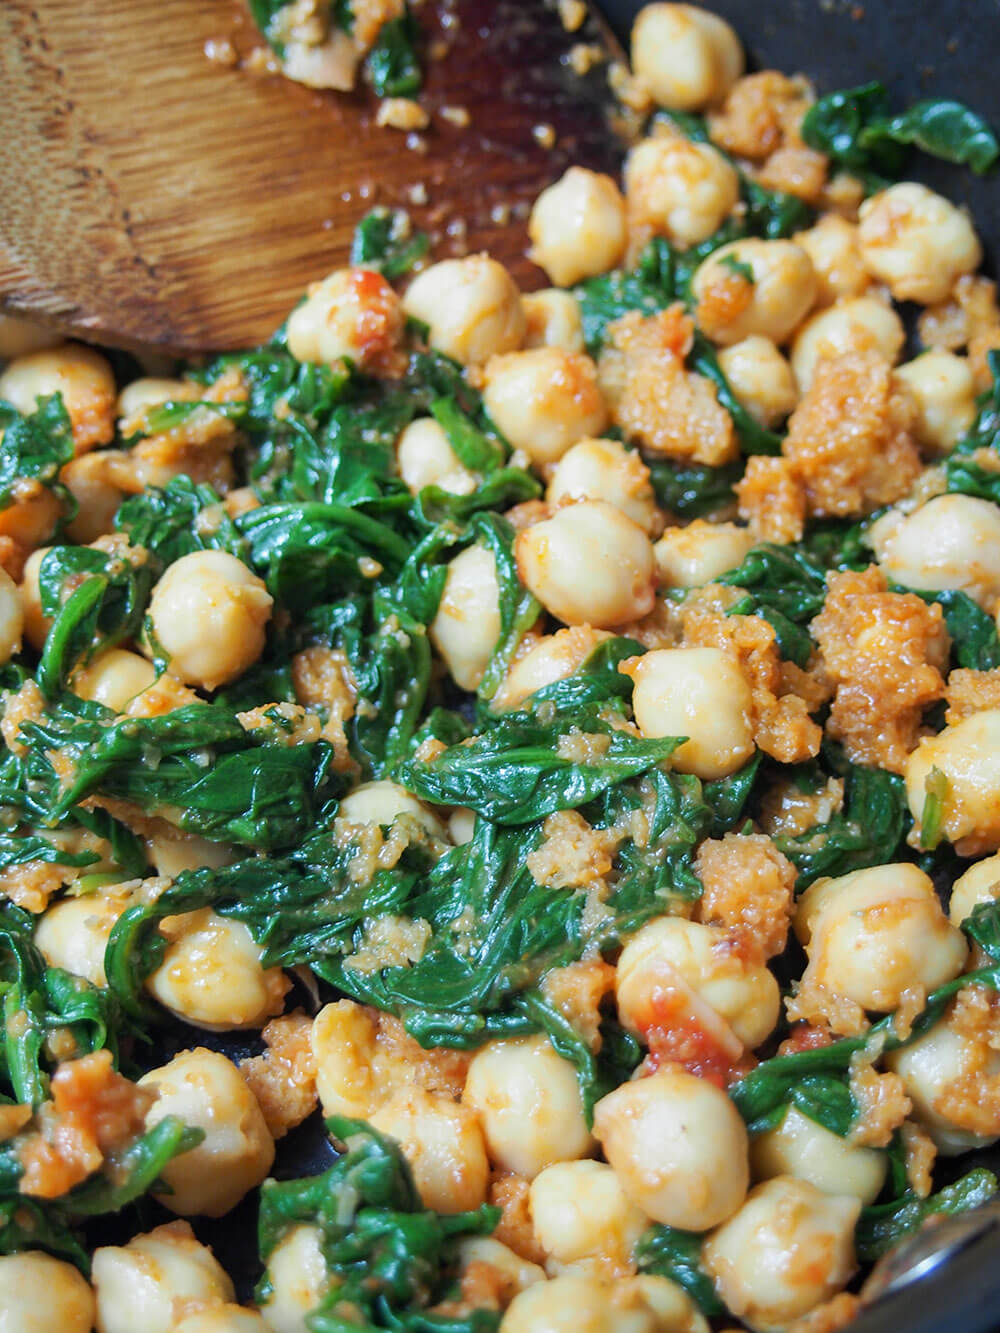 cooking Spanish chickpeas and spinach